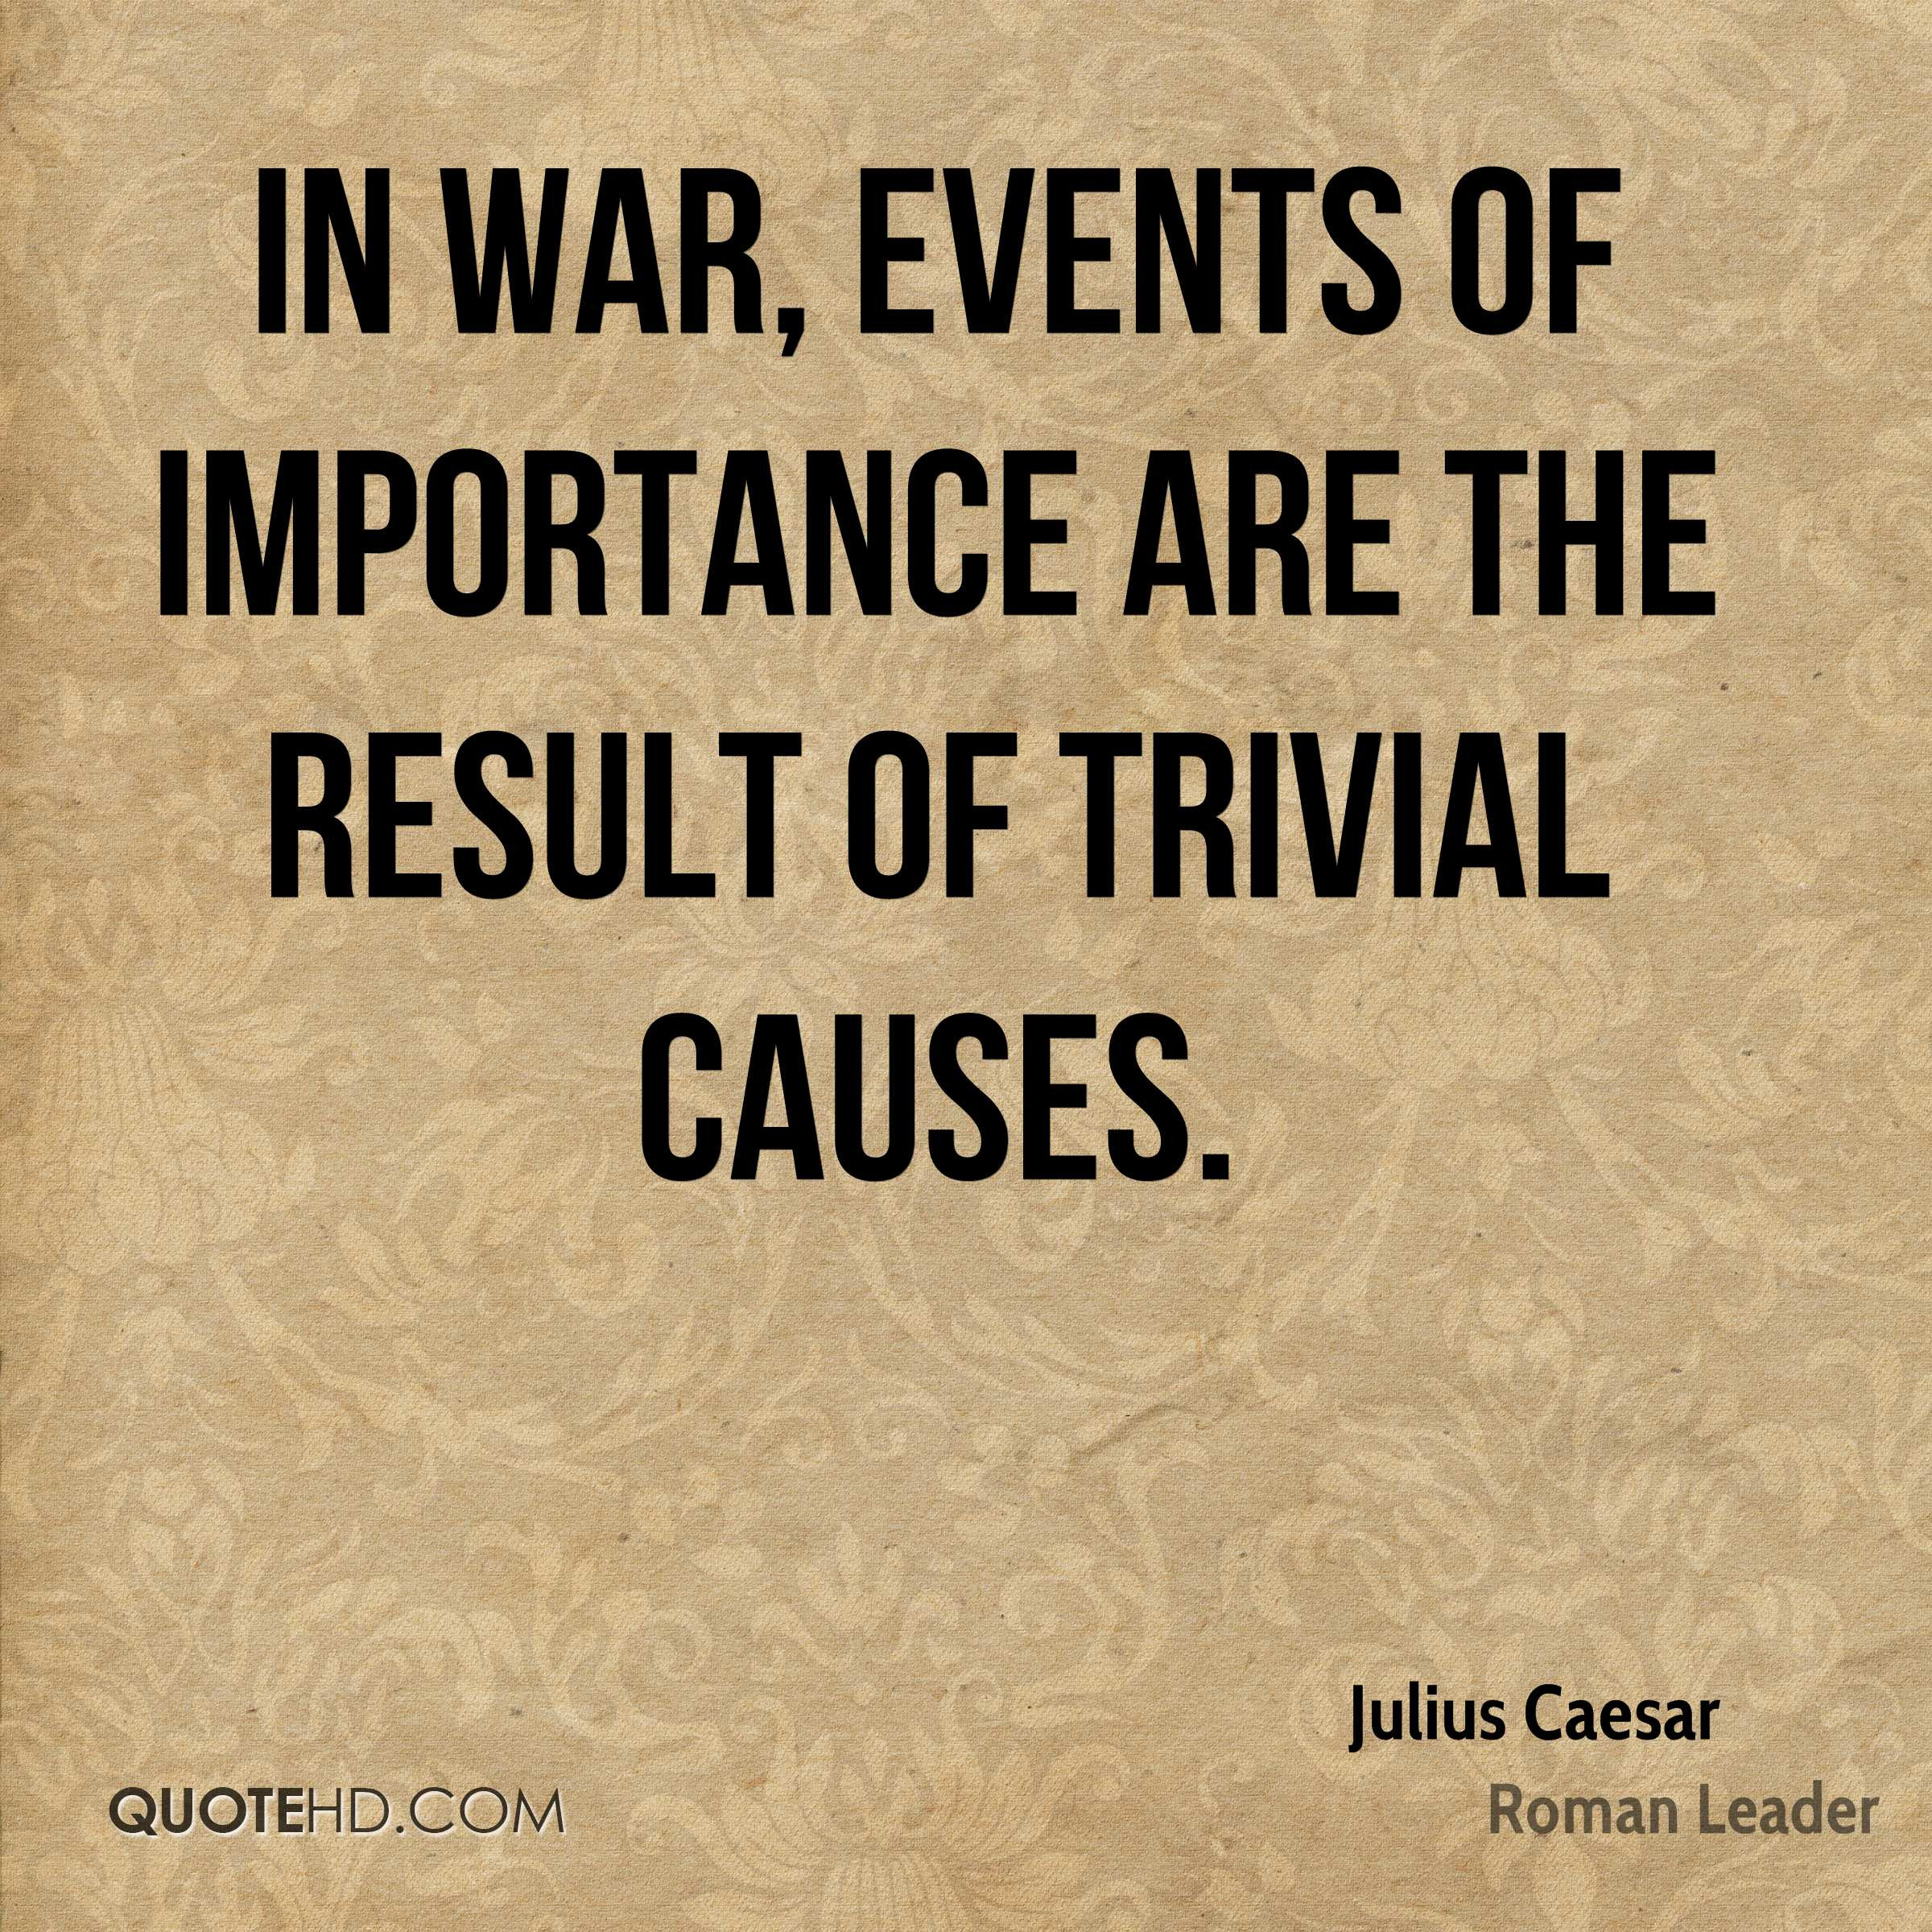 Julius Caesar Leadership Quotes  Julius Caesar War Quotes